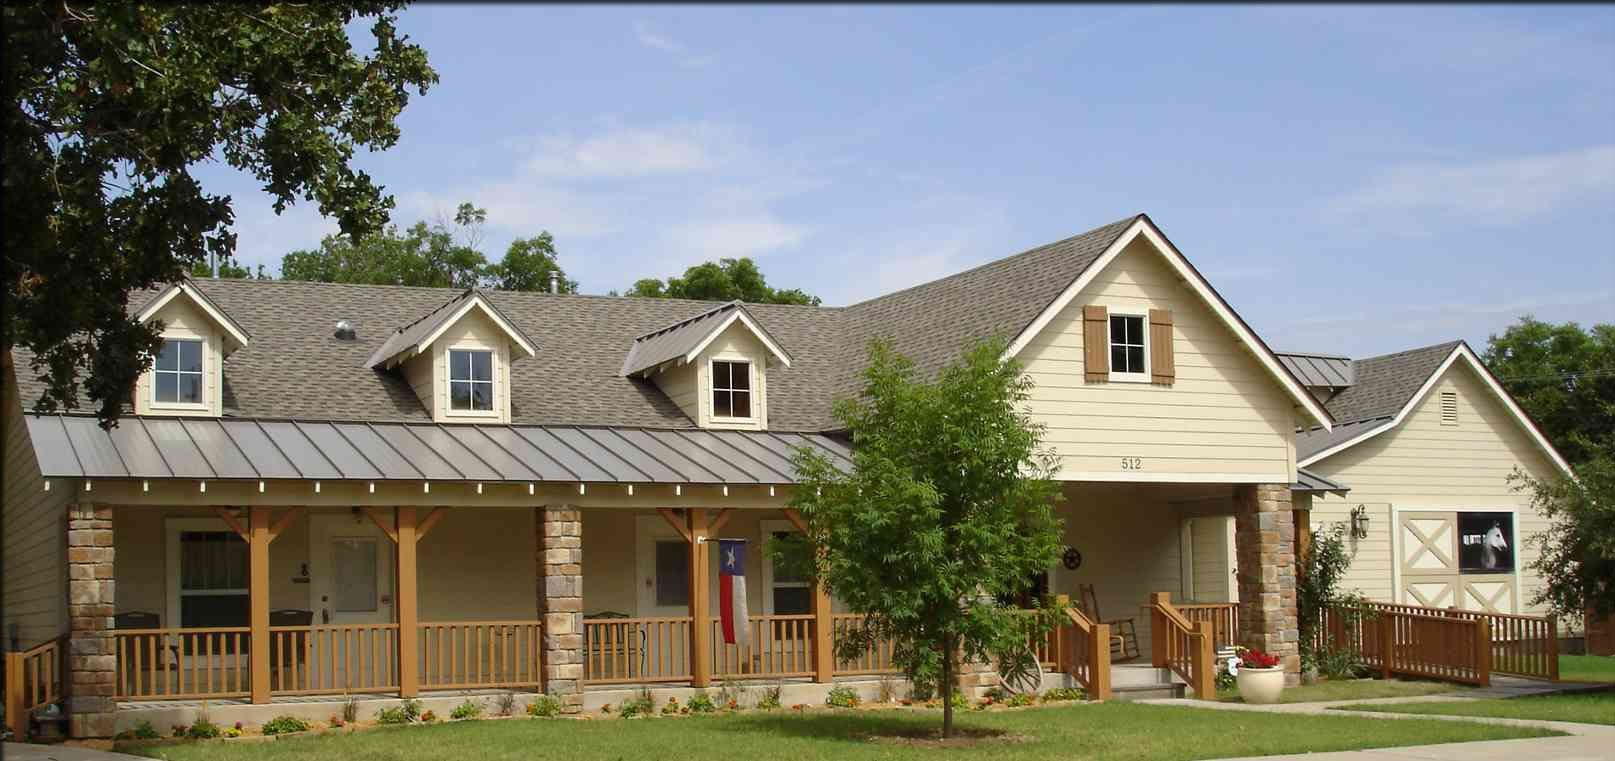 Image result for homes on Texas Ranches Ranch style